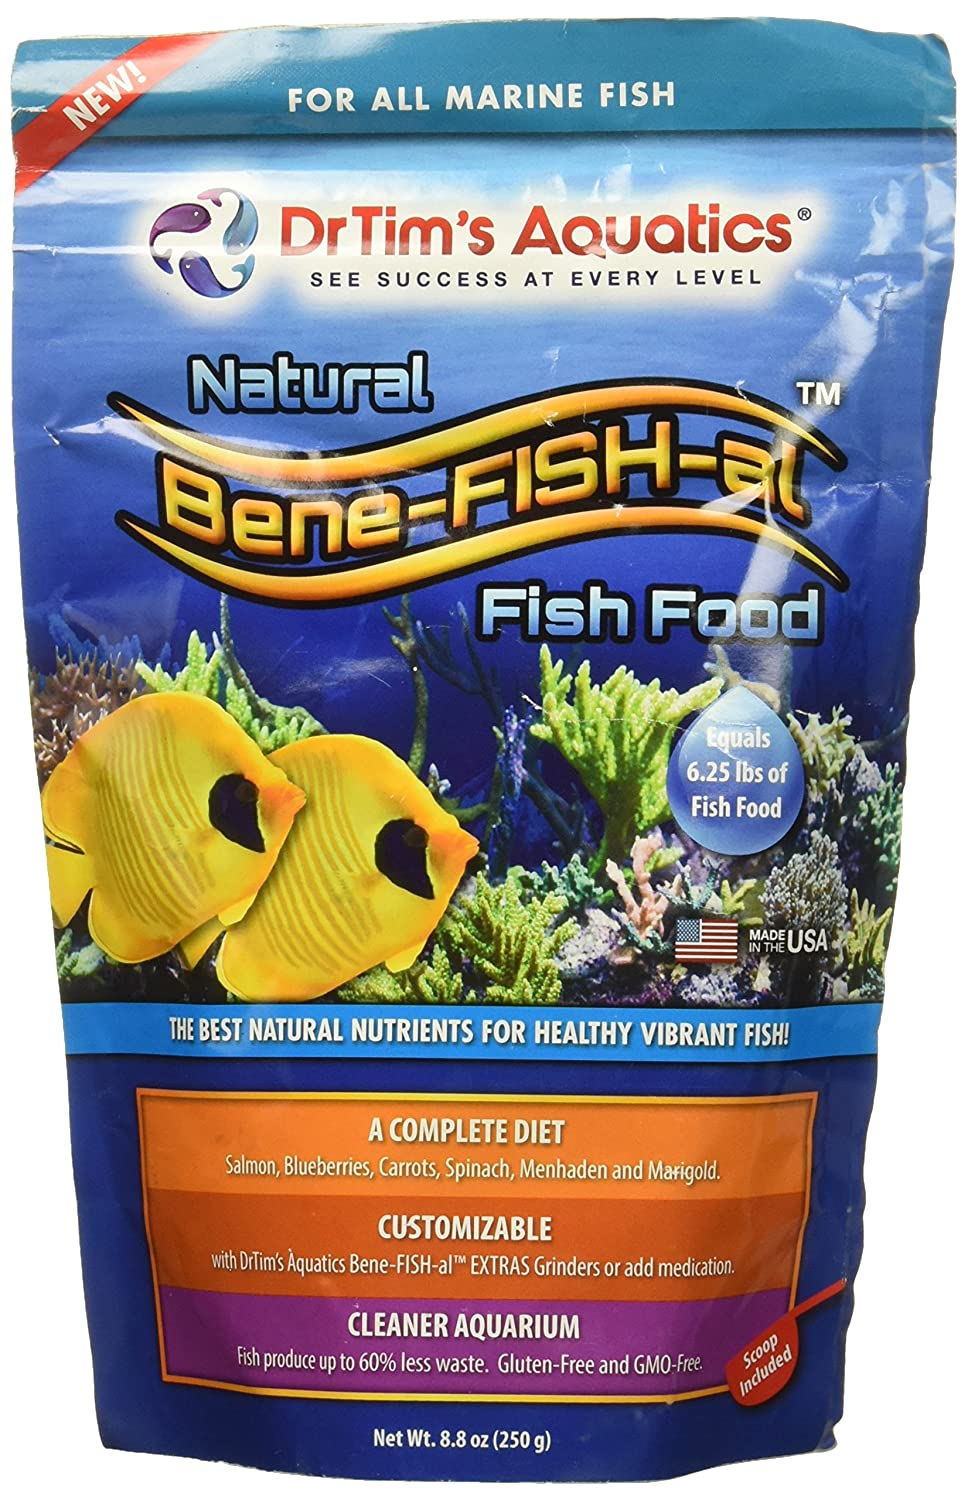 DR. TIM'S AQUATICS 022189 8 oz 1 Piece Bene-Fish-Al Fish Marine Economy Pack Food